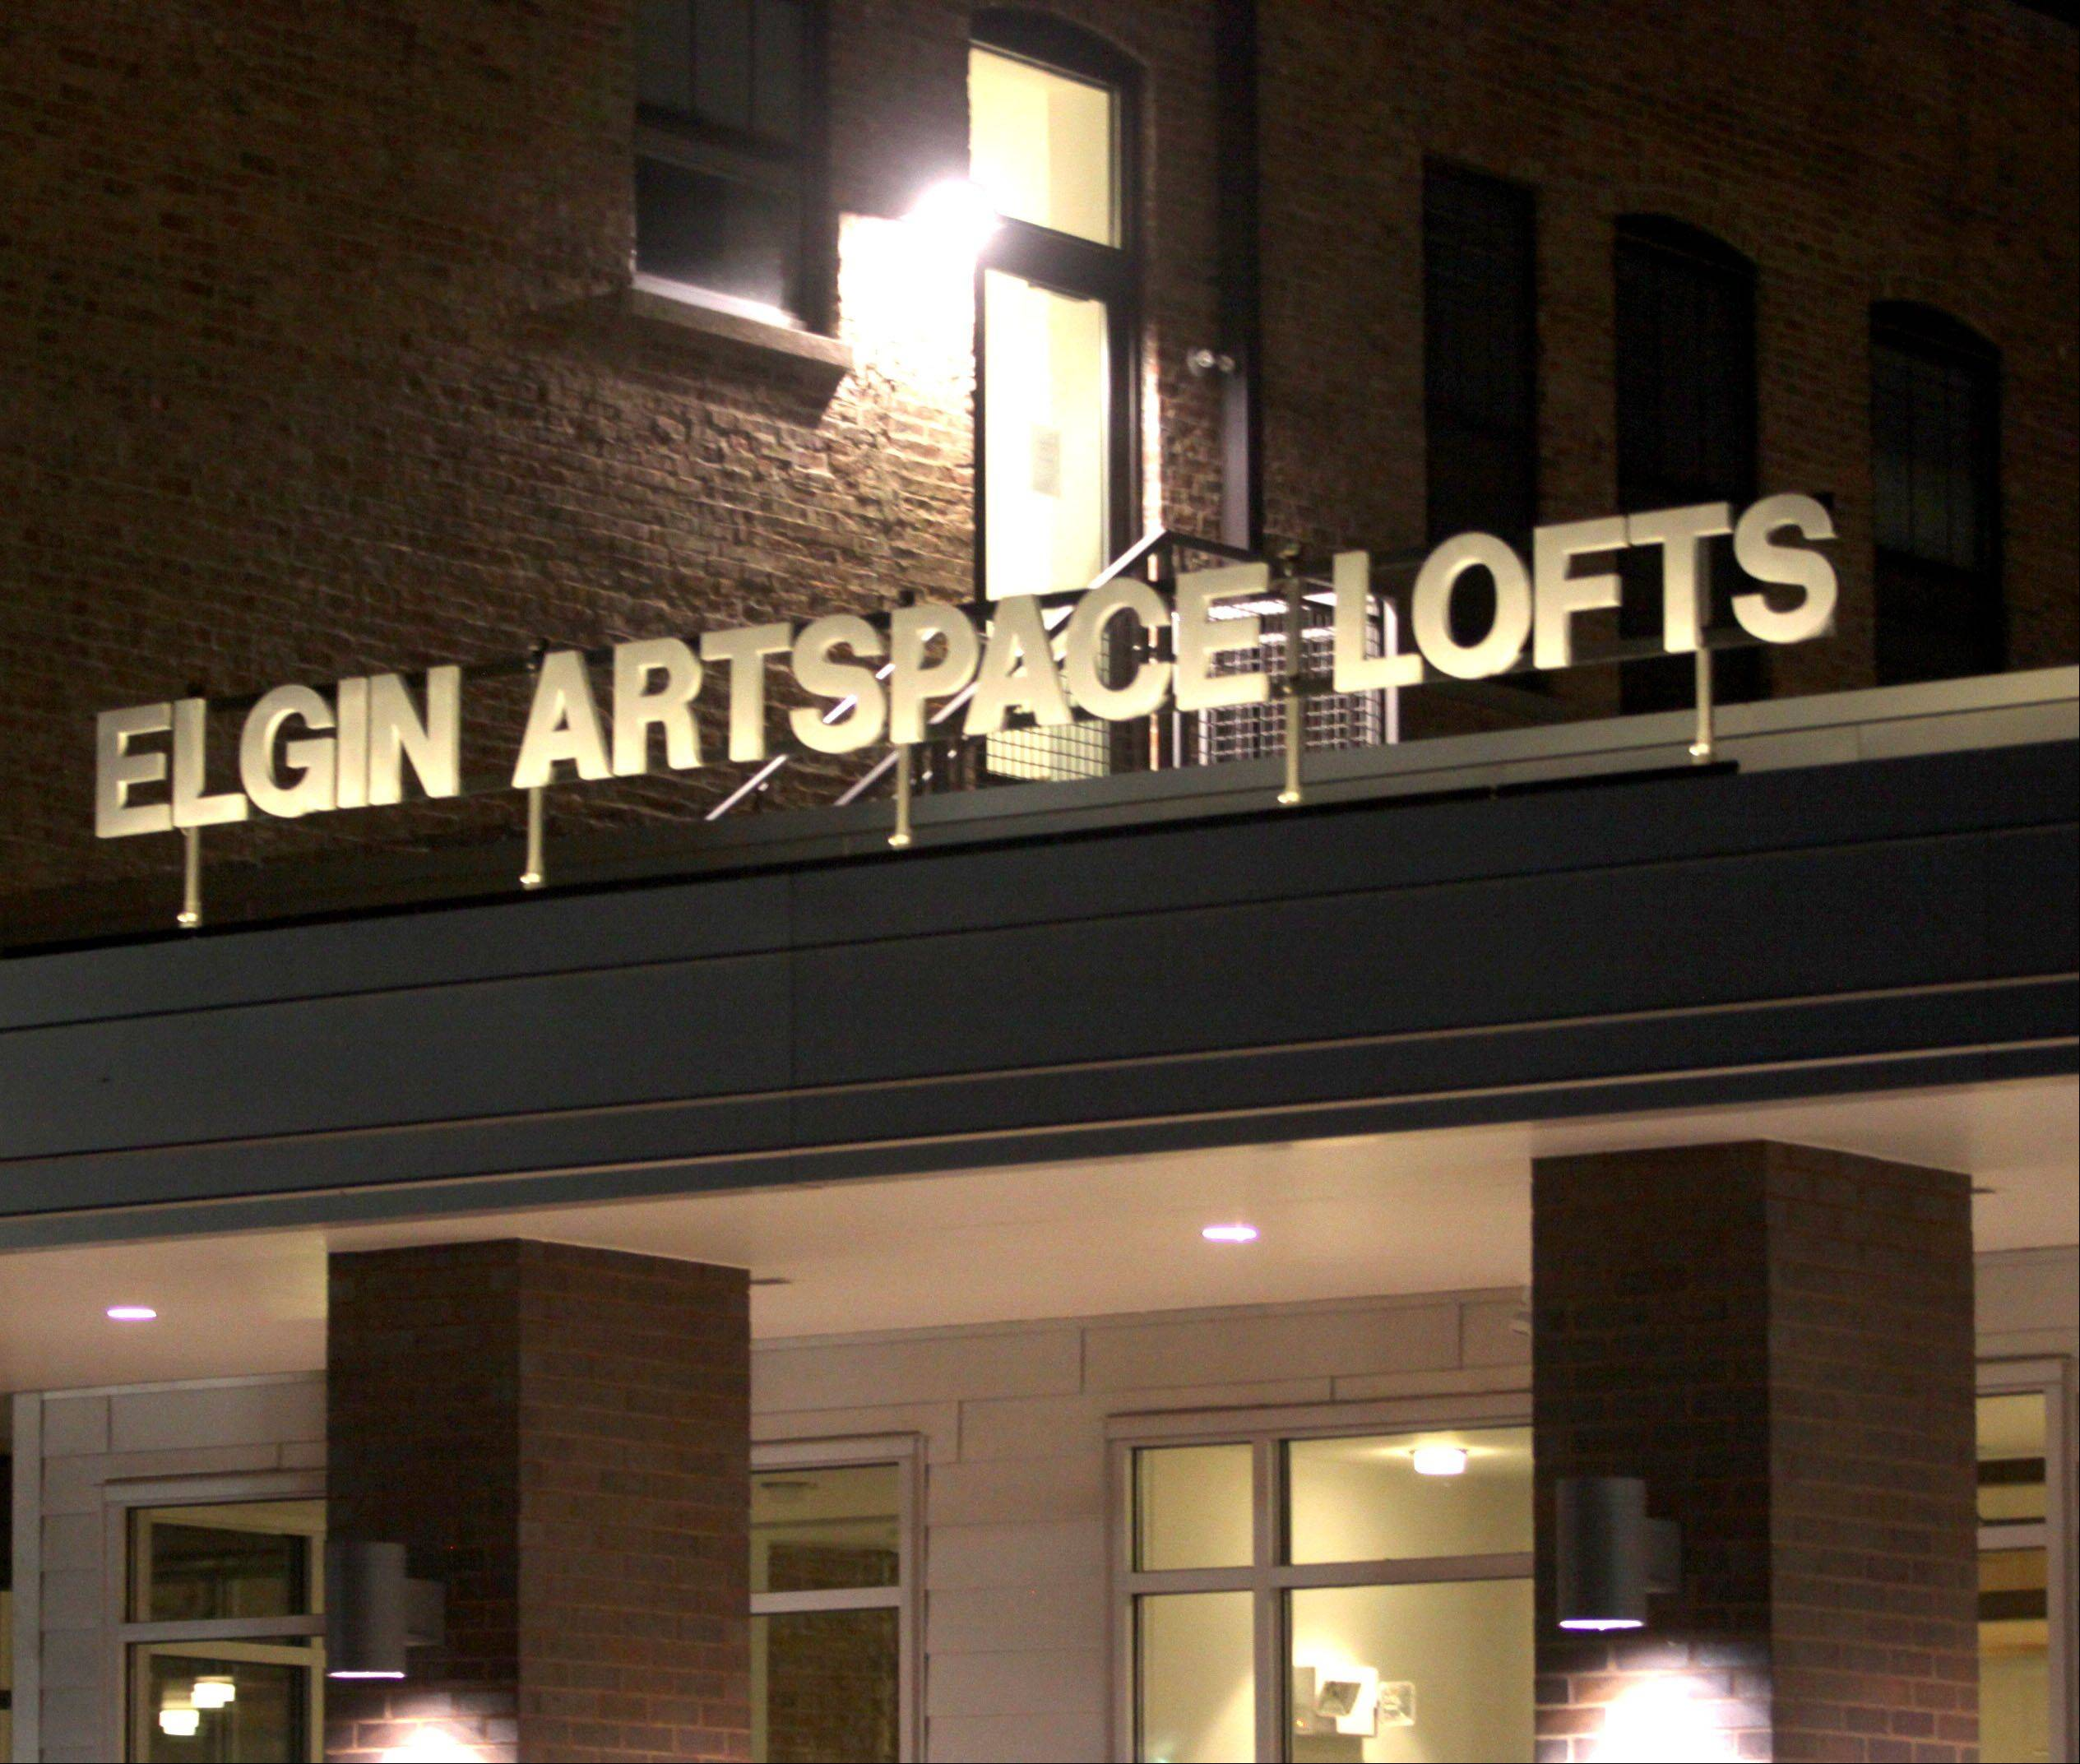 Tenants have begun moving into Elgin Artspace Lofts, a two-building, 55-unit project that includes renovation of the old Elgin Community College Fountain Square campus and new construction along Spring Street.